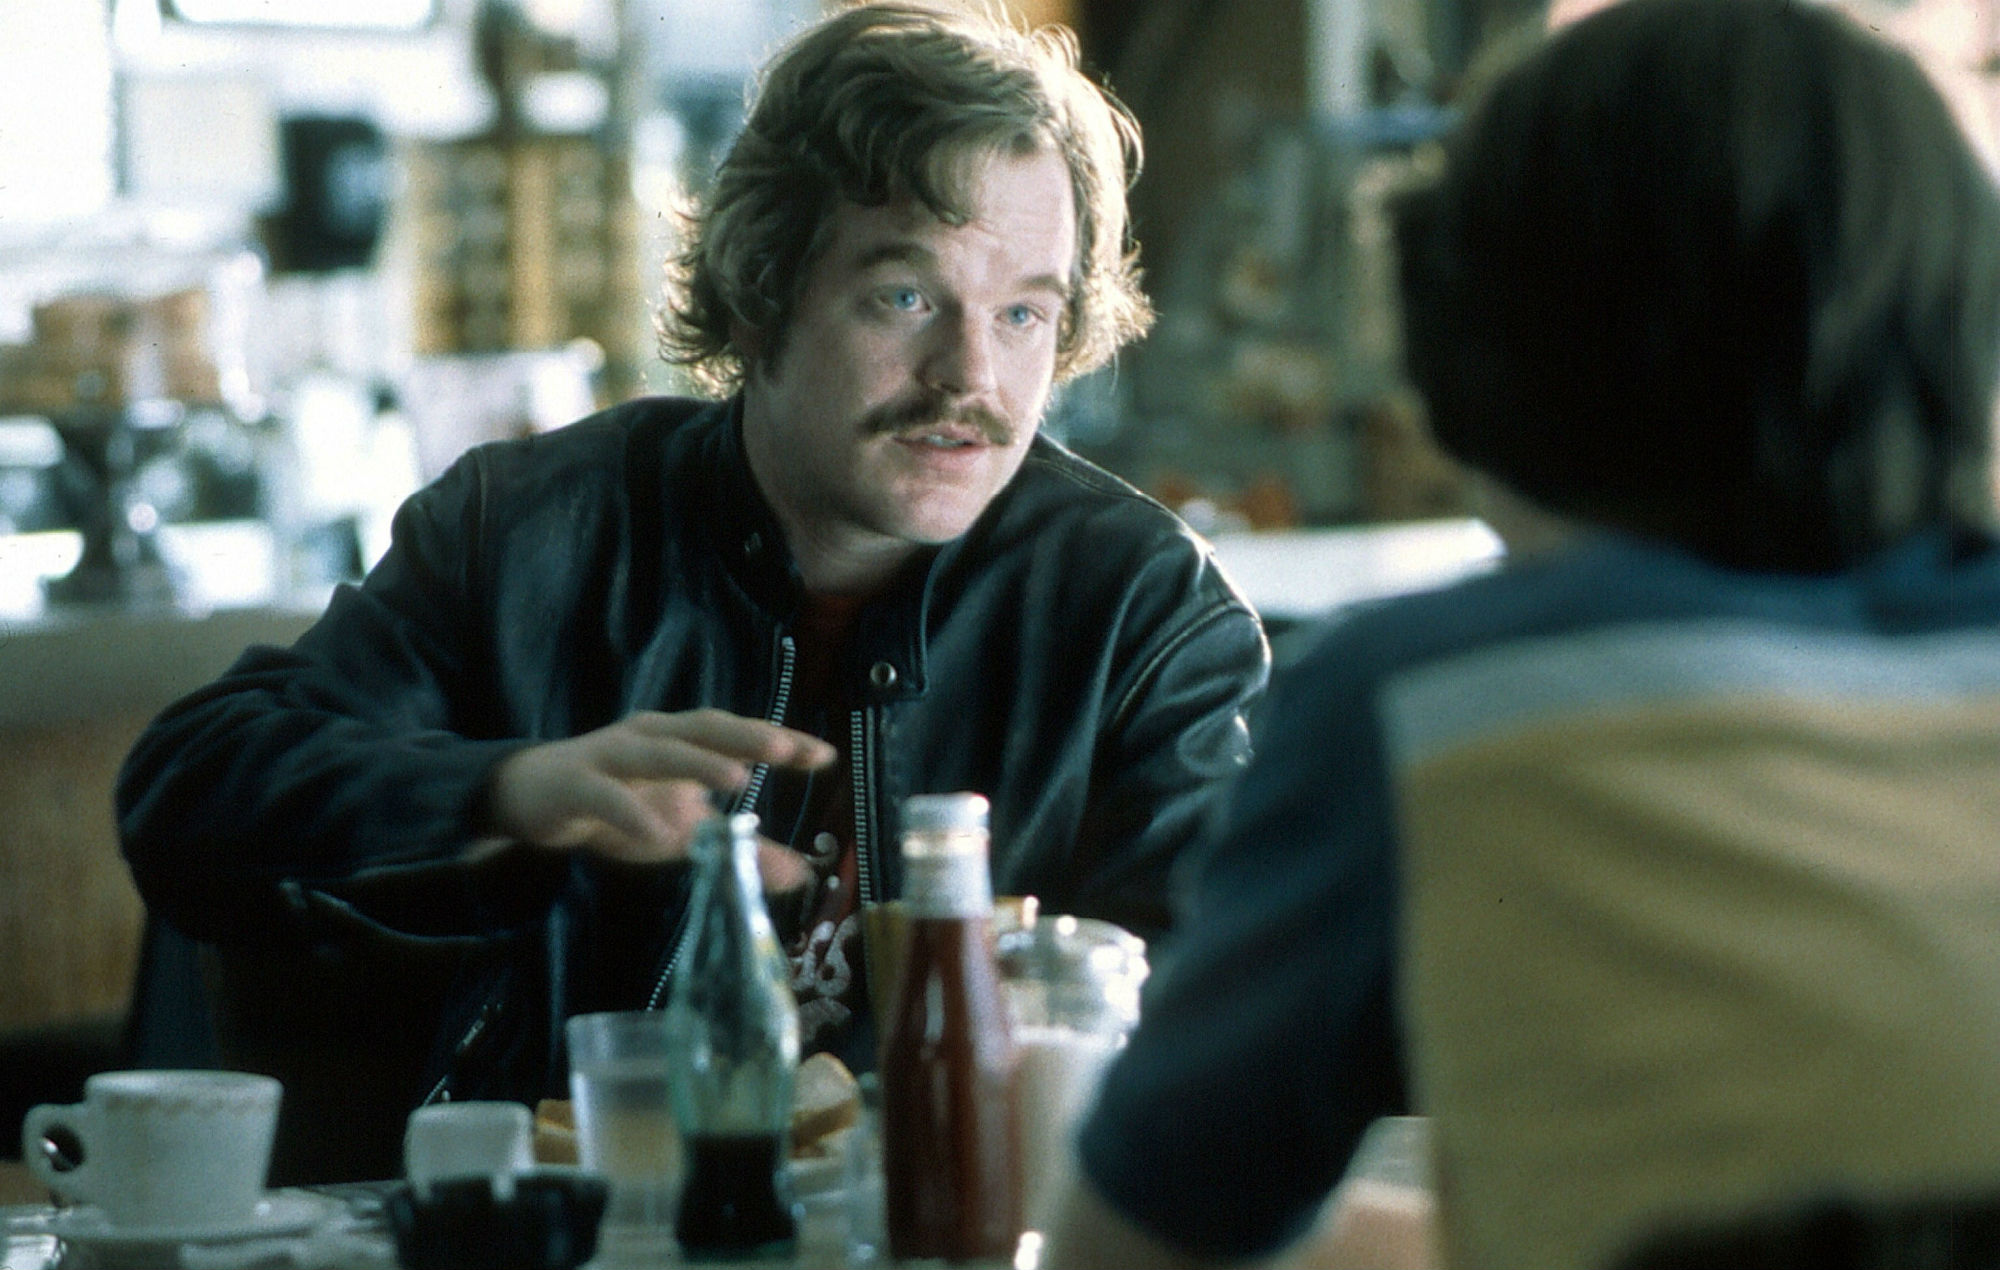 Cameron Crowe opens up about Phillip Seymour Hoffman's performance in 'Almost Famous'